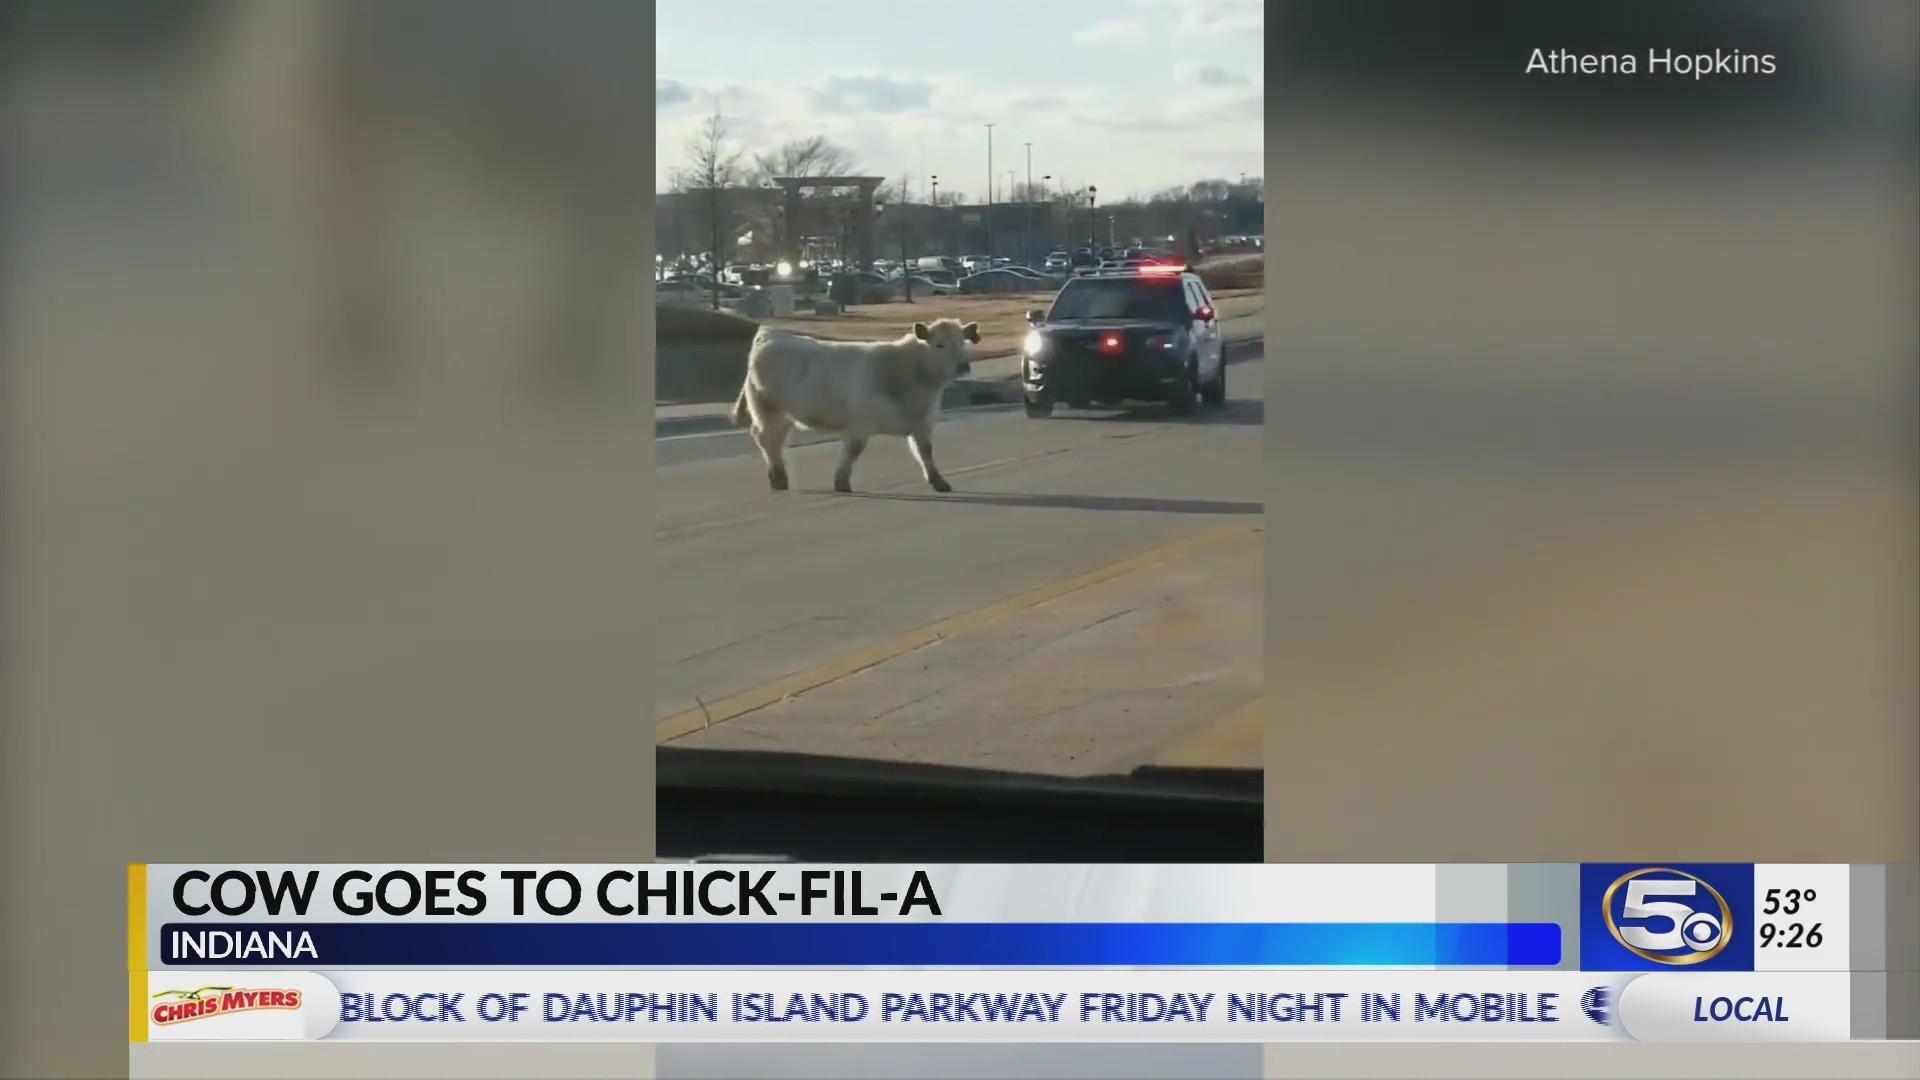 Cow on the run heads to Chick-Fil-A